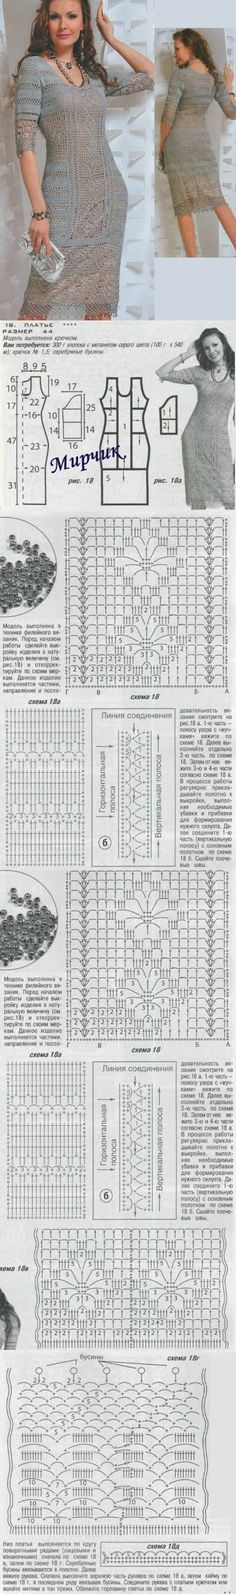 Вязание крючком - платье Dress Patterns, Crochet Patterns, Crochet Diagram, Stylish Dresses, Crochet Clothes, Knit Dress, Knit Crochet, Diy And Crafts, Projects To Try